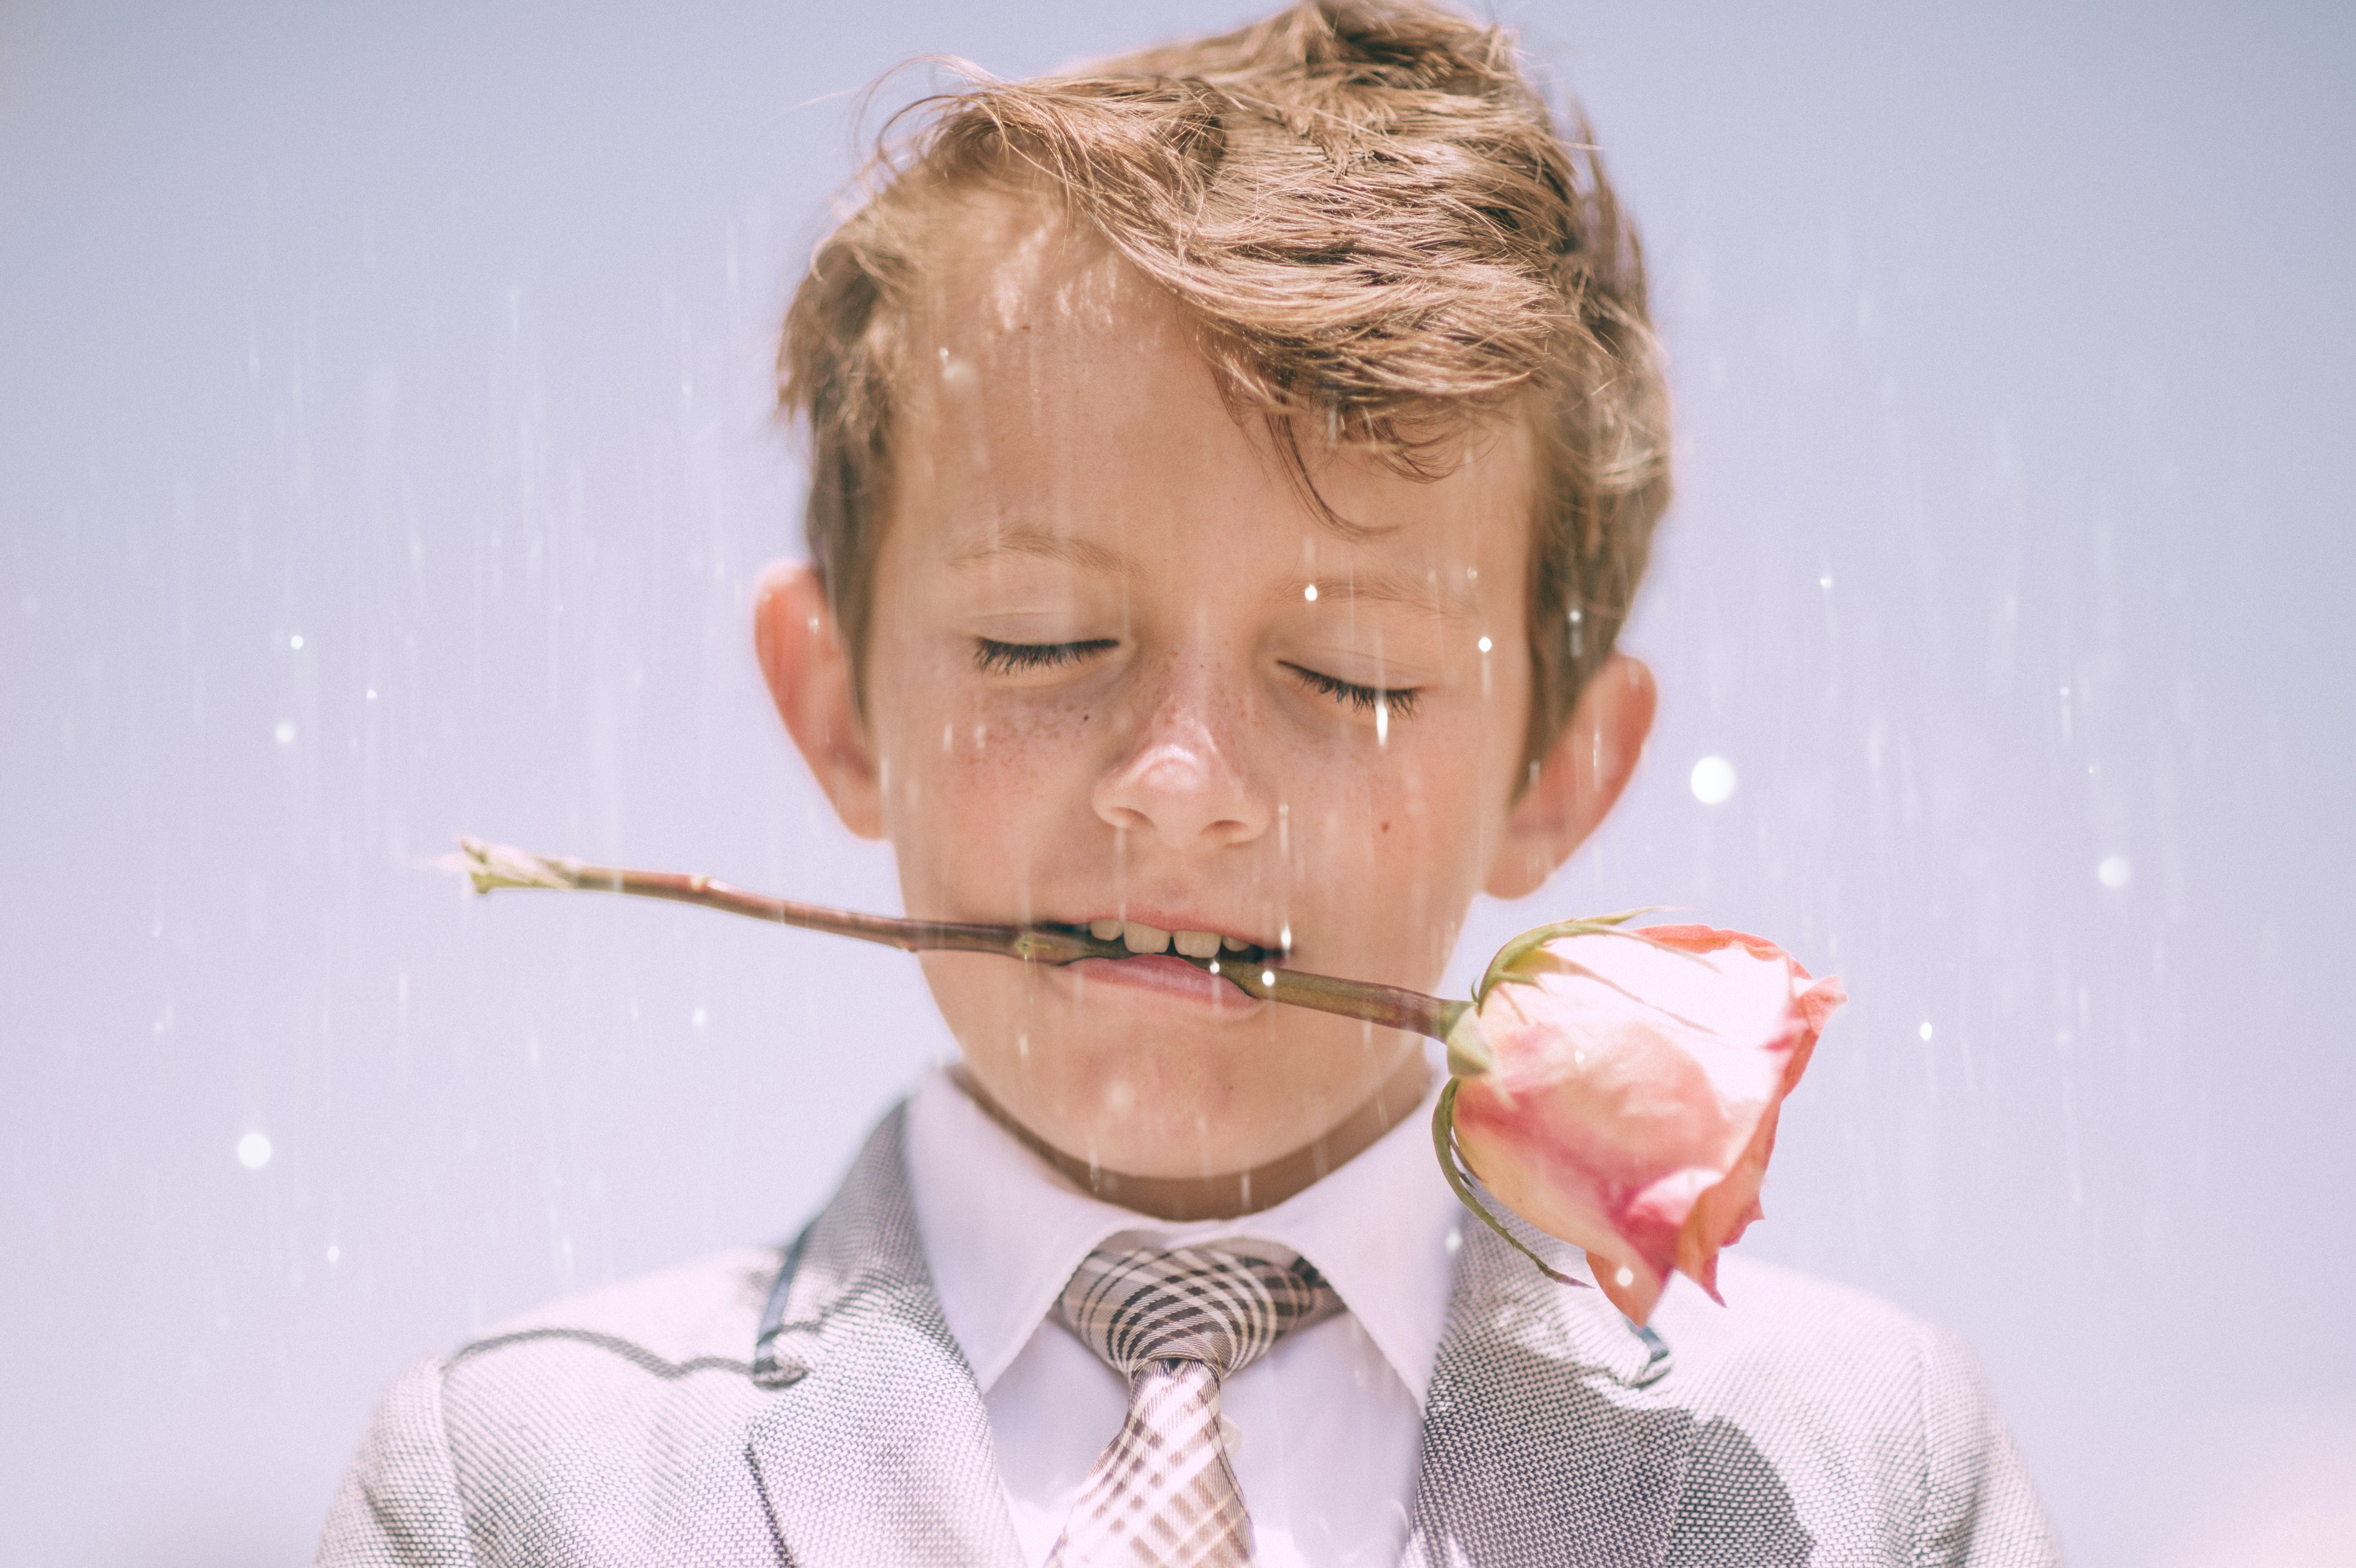 A little boy in a formal suit holding a pink rose between his teeth